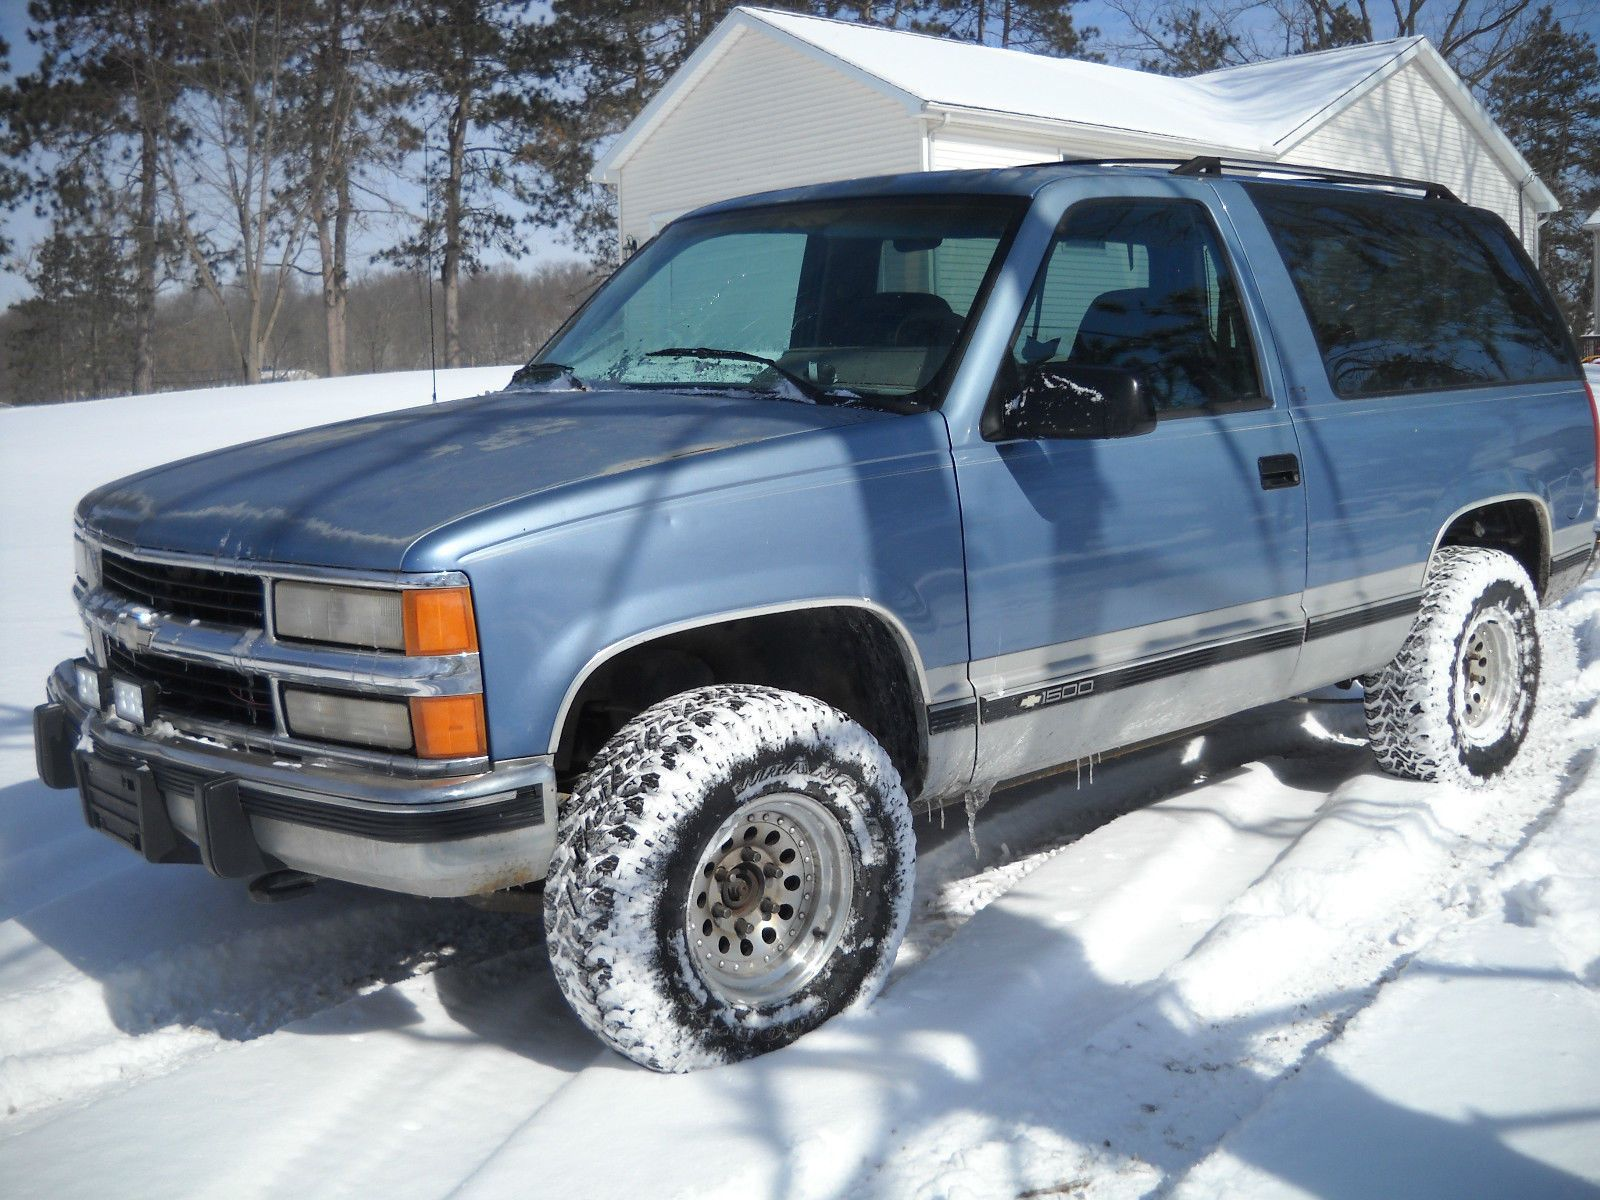 1994 chevy blazer k5 full size 1500 5 speed manual wheels us rh pinterest com 1994 chevy blazer service manual 1994 chevrolet blazer owners manual